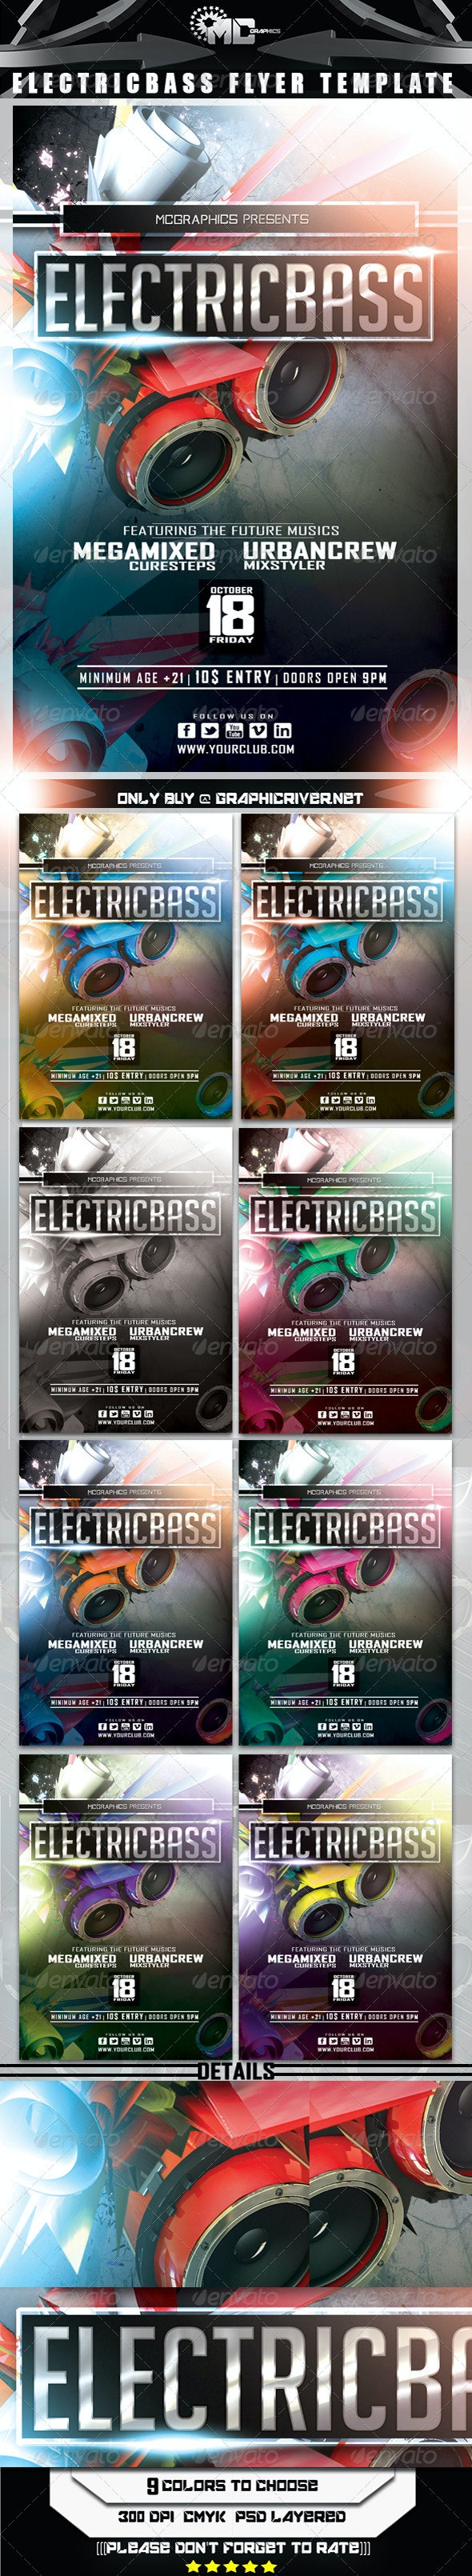 Electric Bass Fyer Template - Clubs & Parties Events